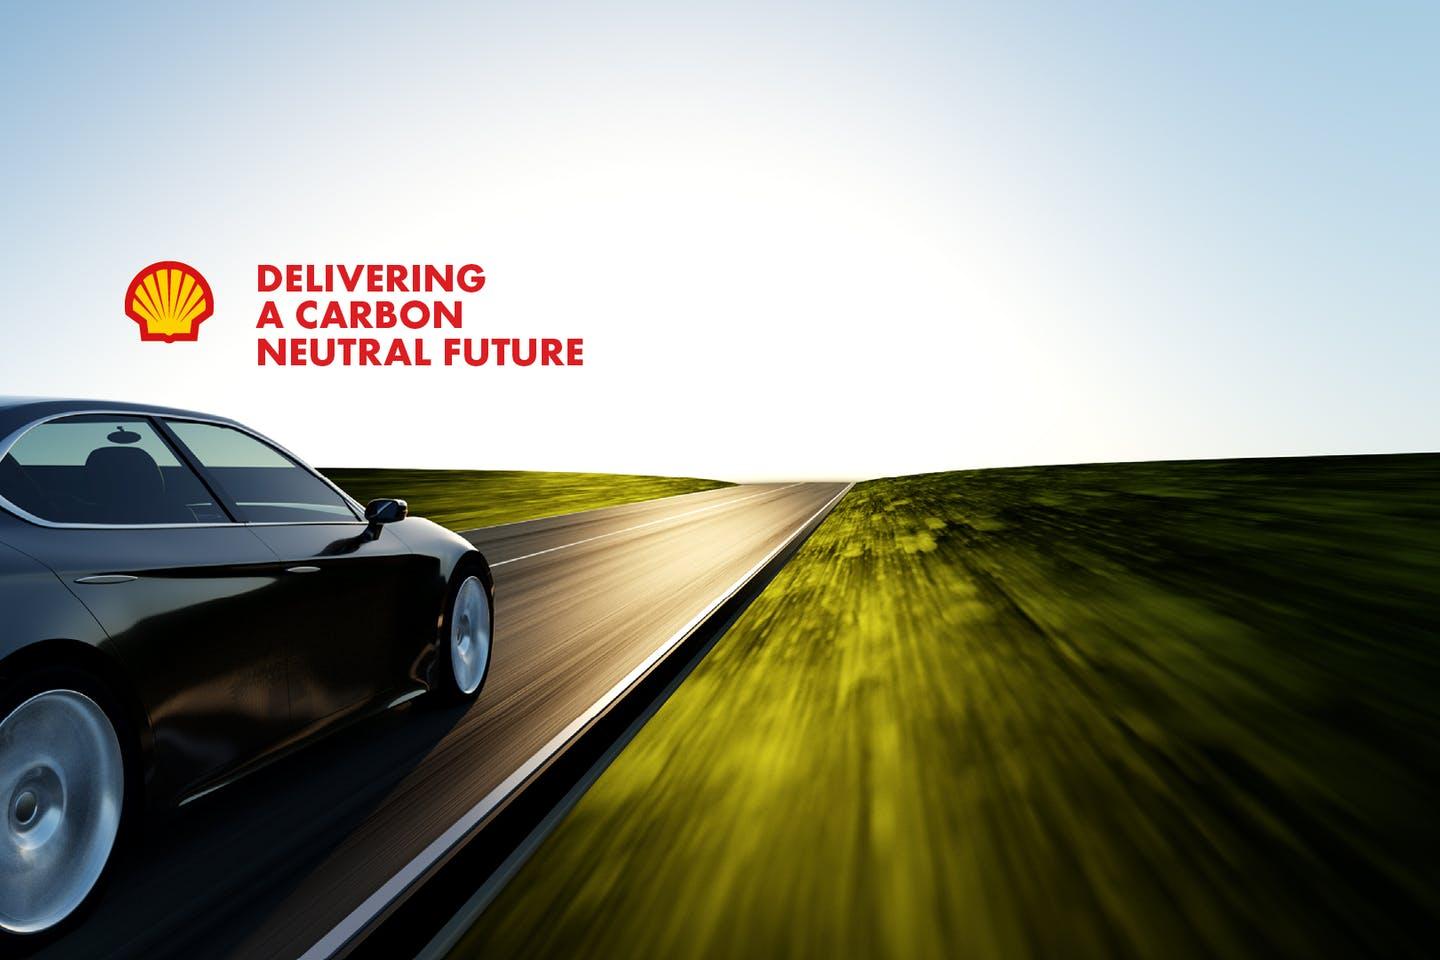 """Shell claims to be delivering a """"carbon neutral"""" future in this advertising campaign."""